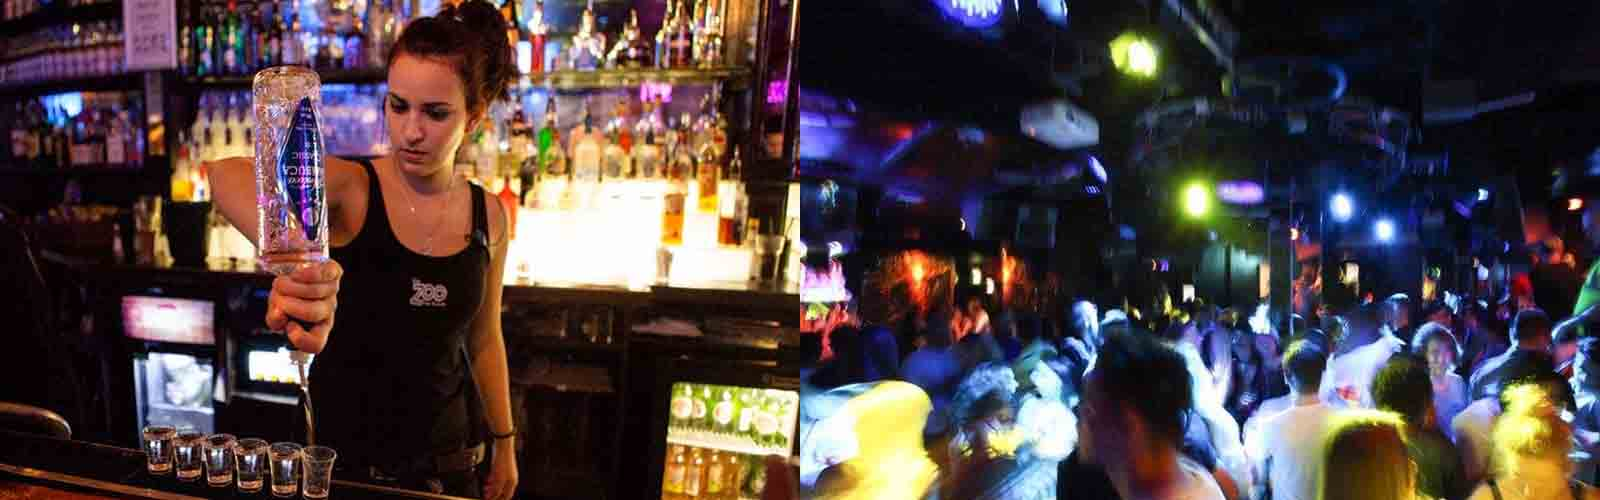 Enjoy a great night at the zoo bar with a London Nightlife Ticket